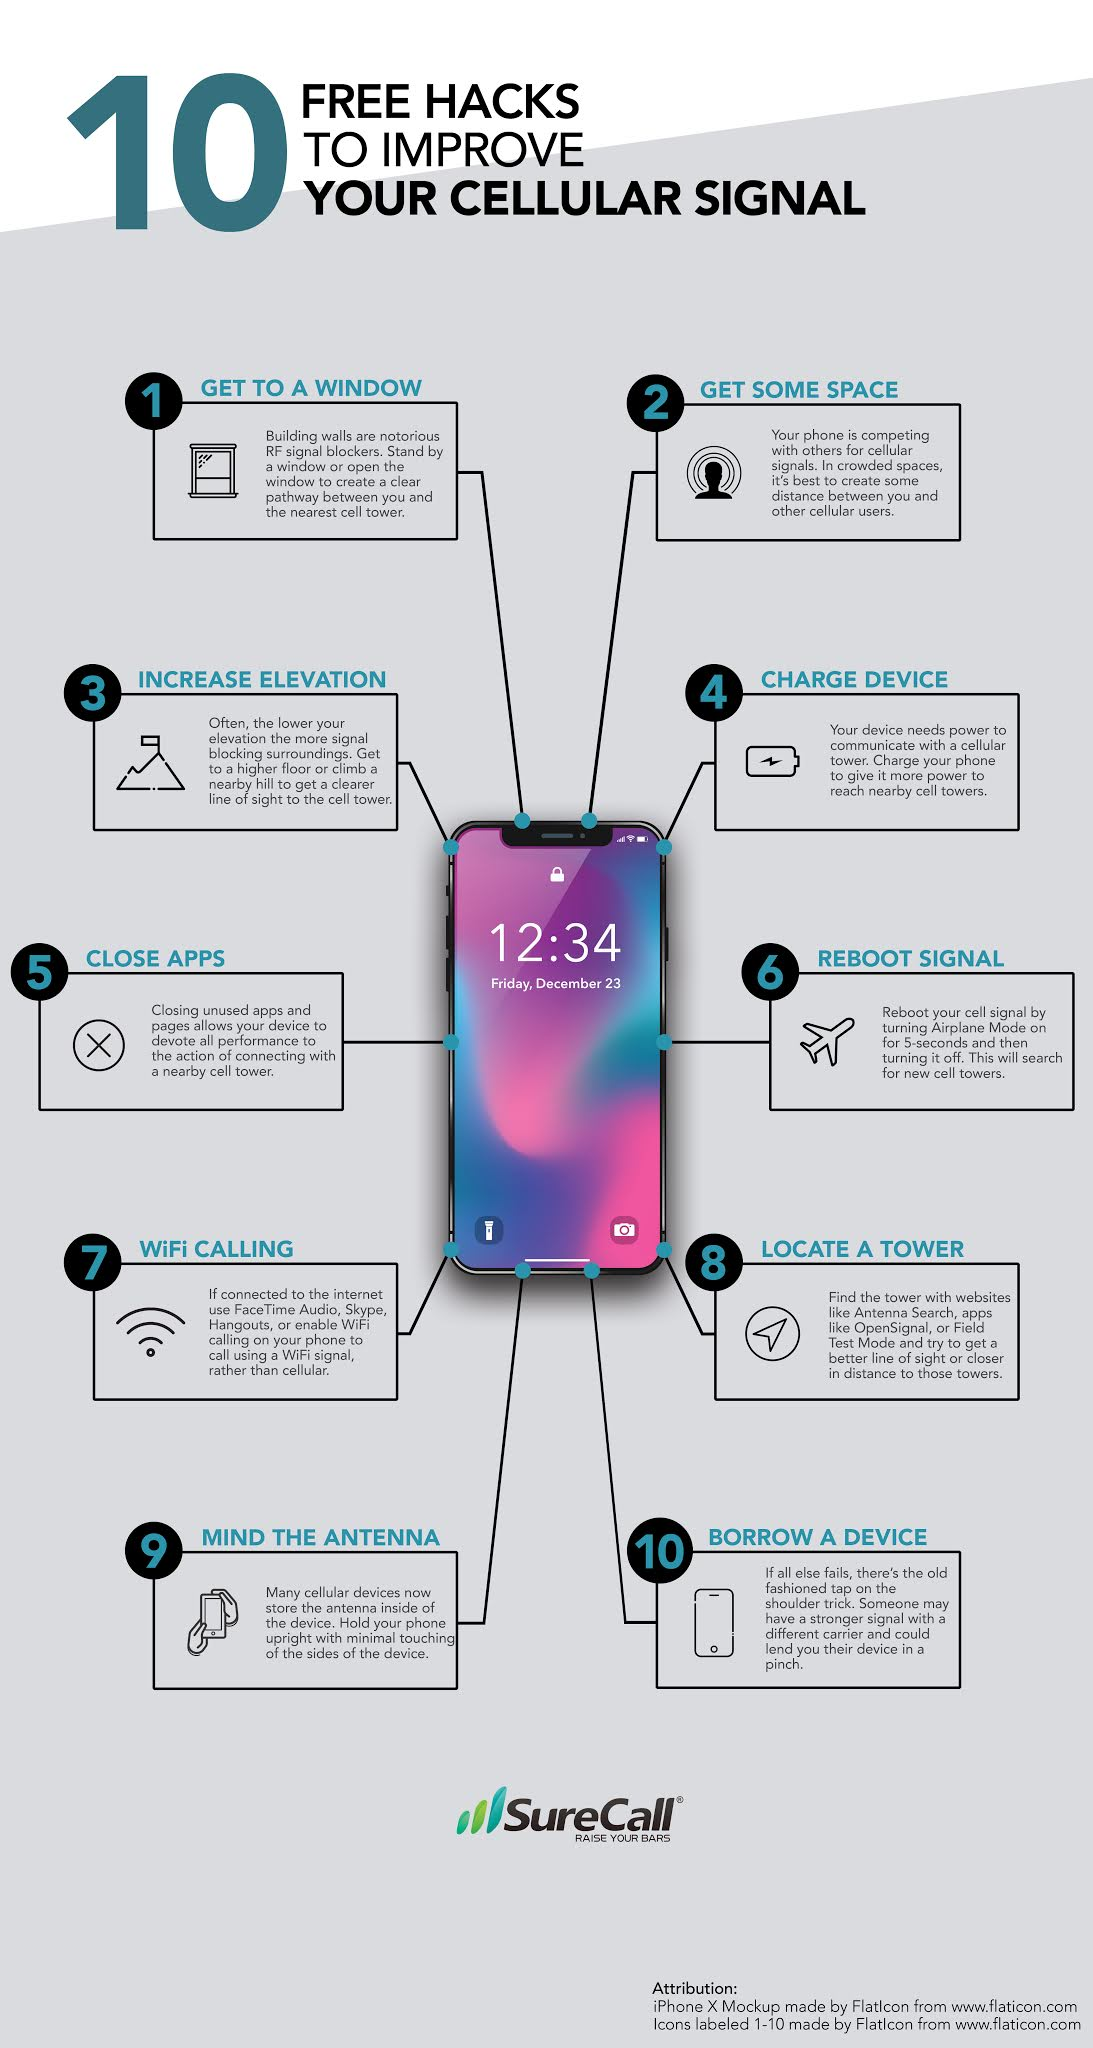 10 Free Hacks to Improve Your Cellular Signal #infographic#Cellular Signal #infographics #Signal Booster #Network Signal #WiFi Network